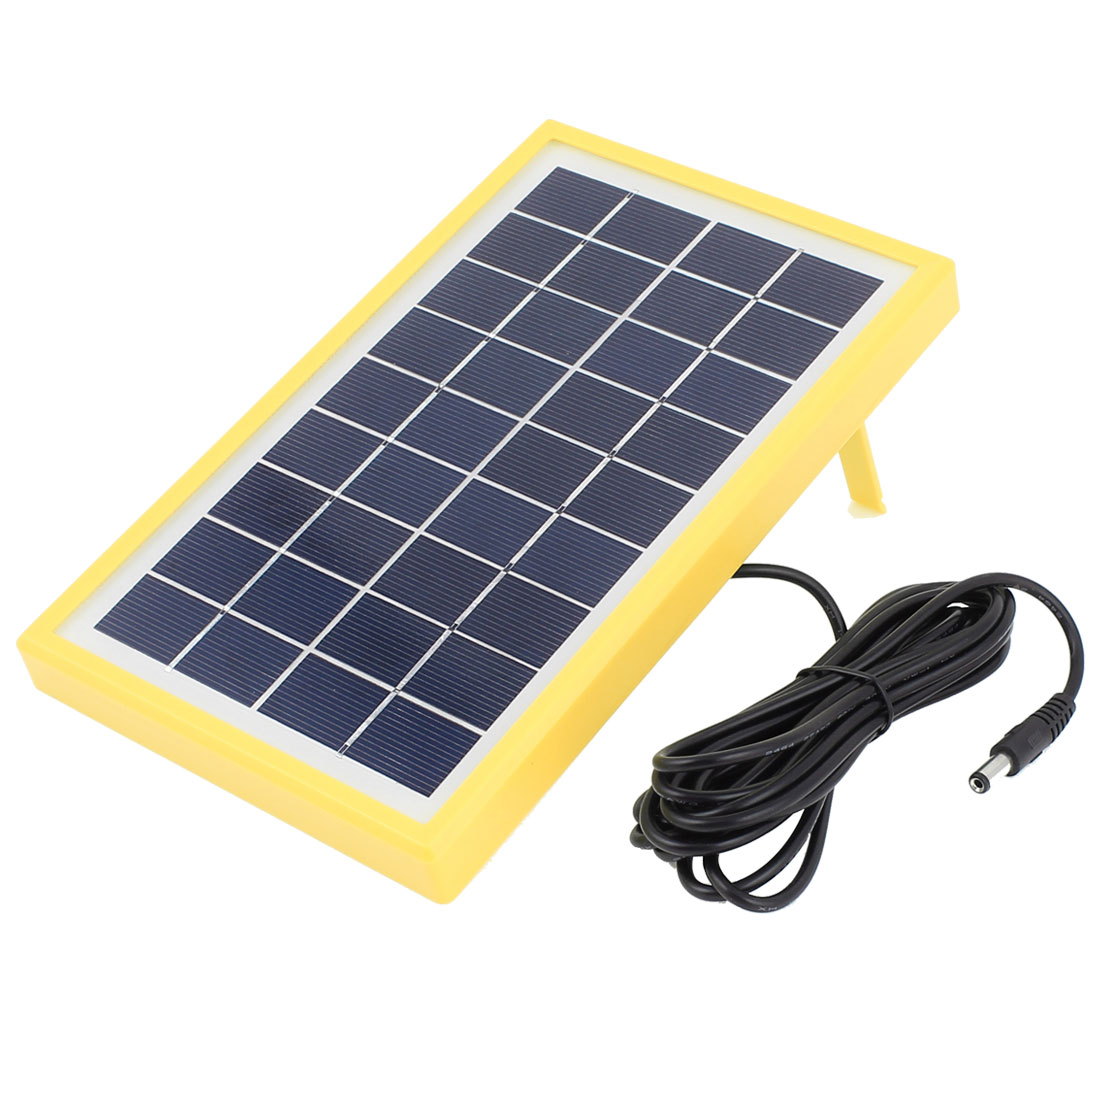 9V 3W DIY Polycrystallinesilicon Solar Panel Power Cell Battery Charger 220mm x 135mm x 17mm